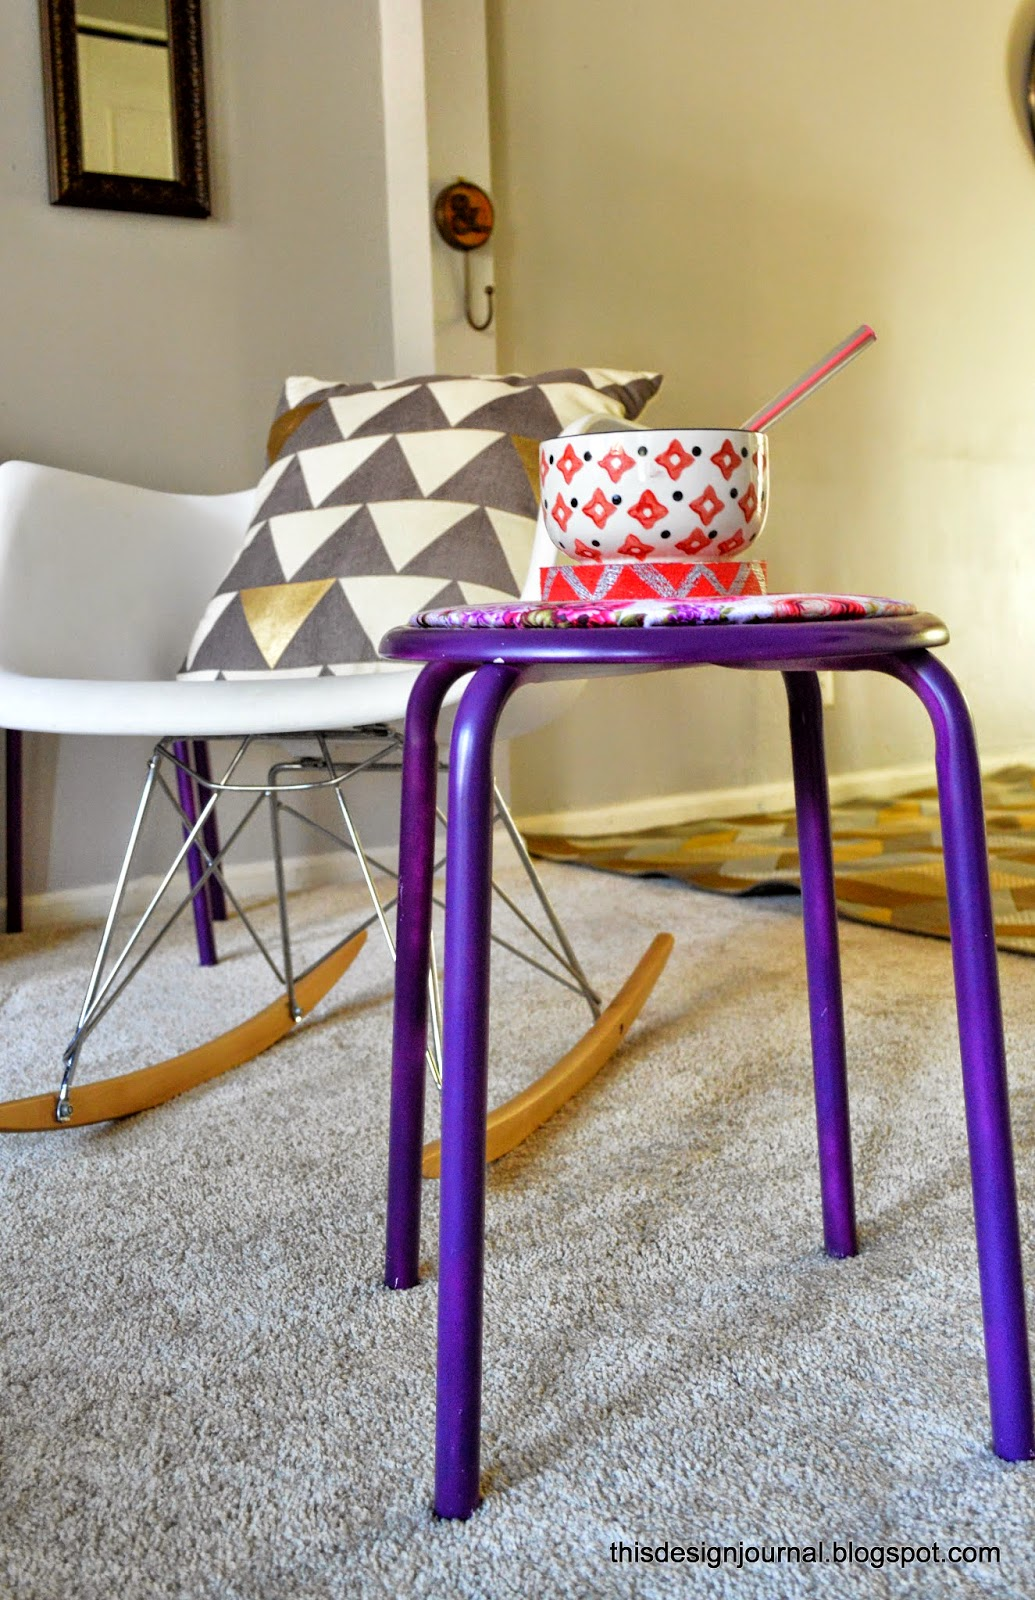 Small space solutions small stools that multi task this design journal - This small space design ...